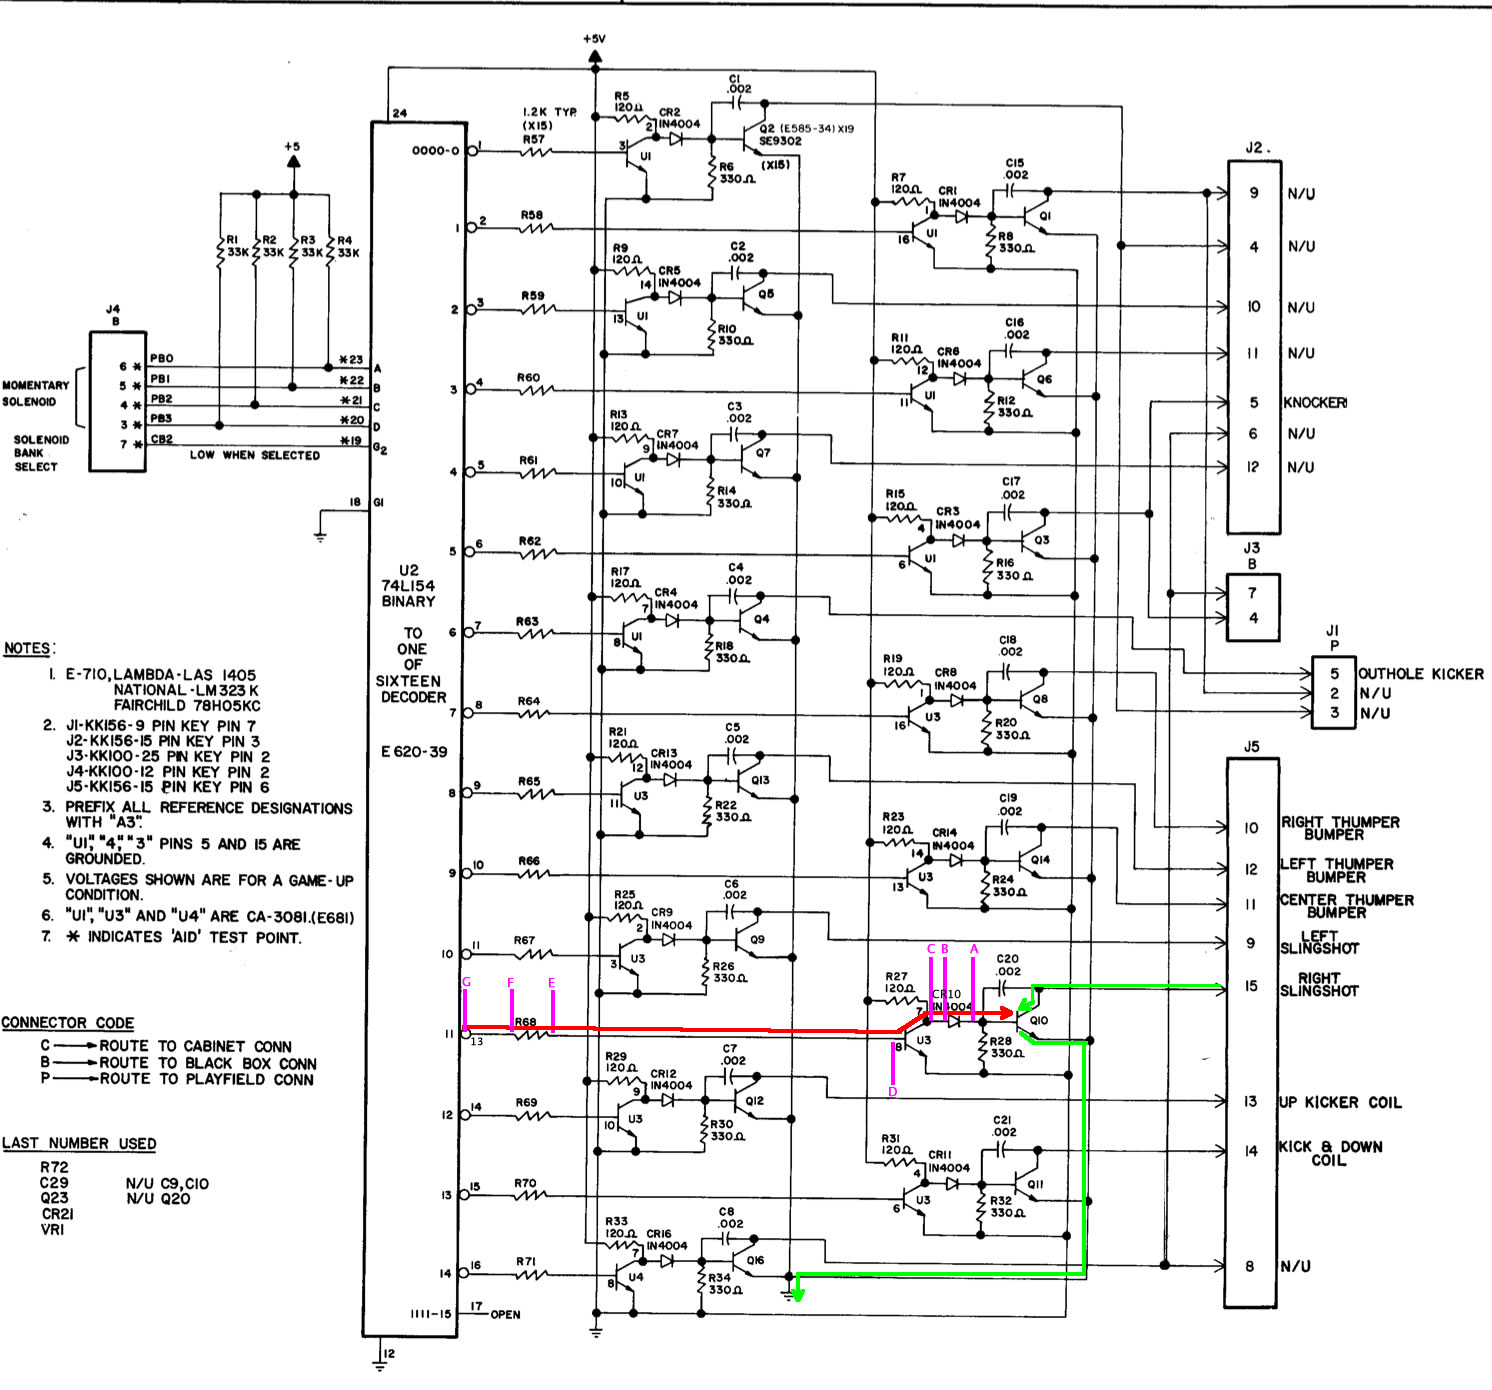 [DIAGRAM] Block Logic Circuits Diagram FULL Version HD